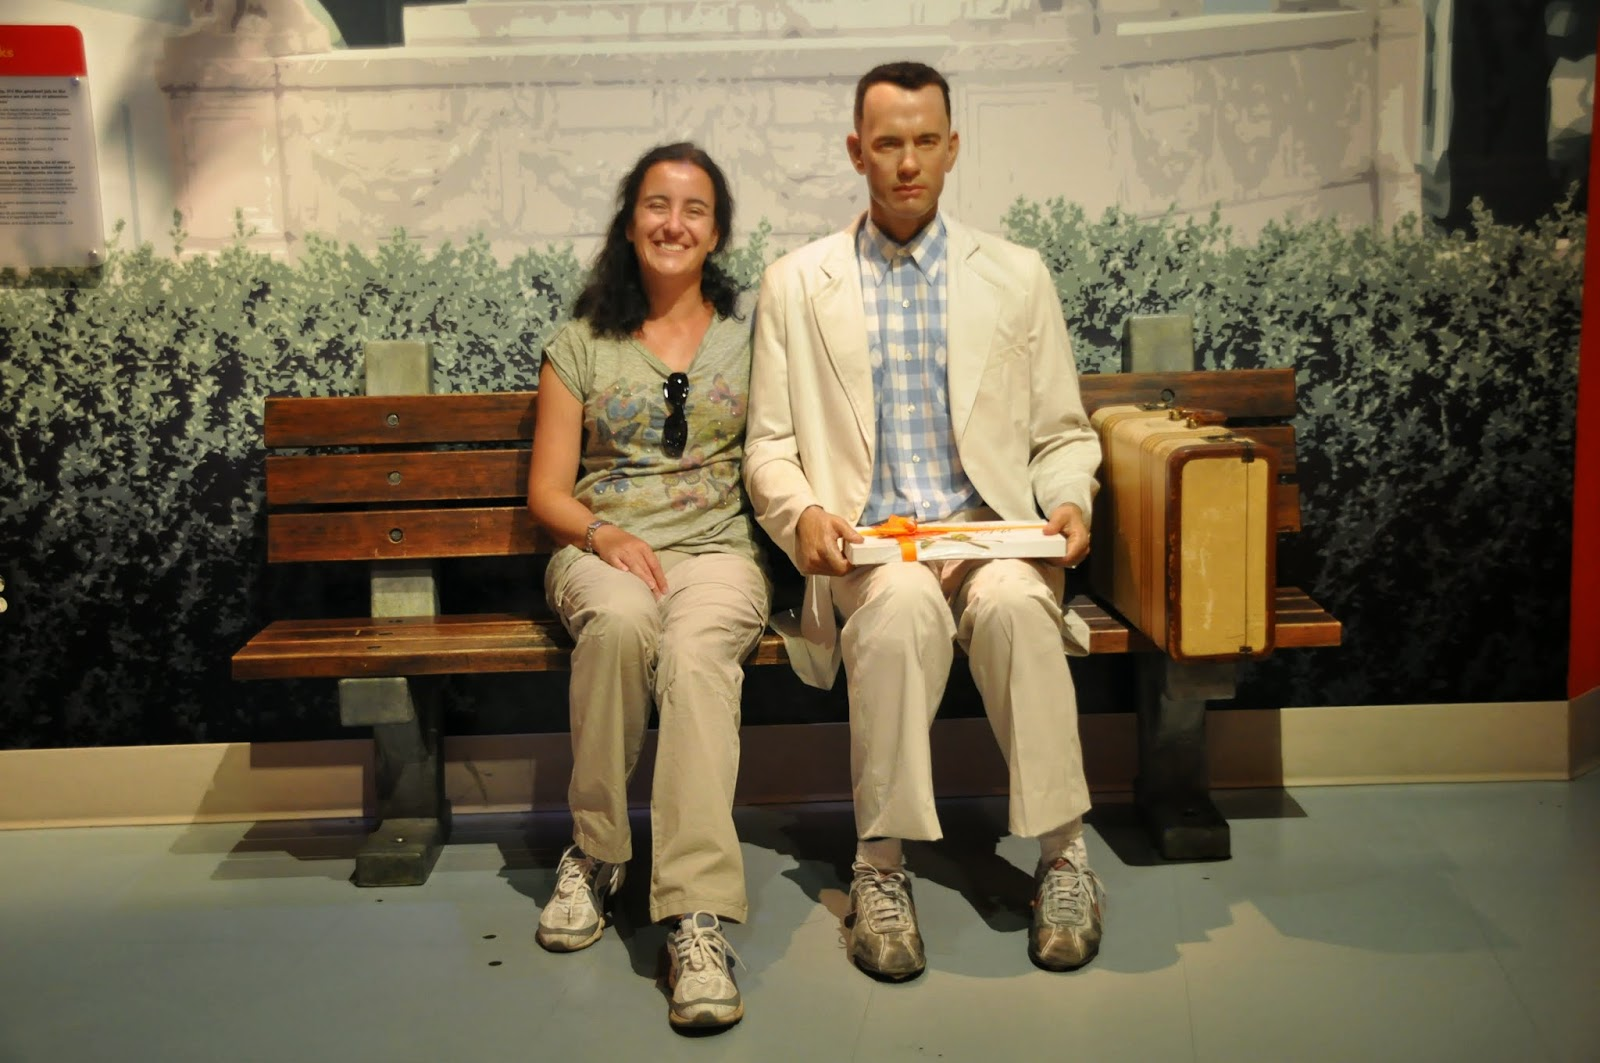 Museo delle cere di Madame Tussaud Hollywood